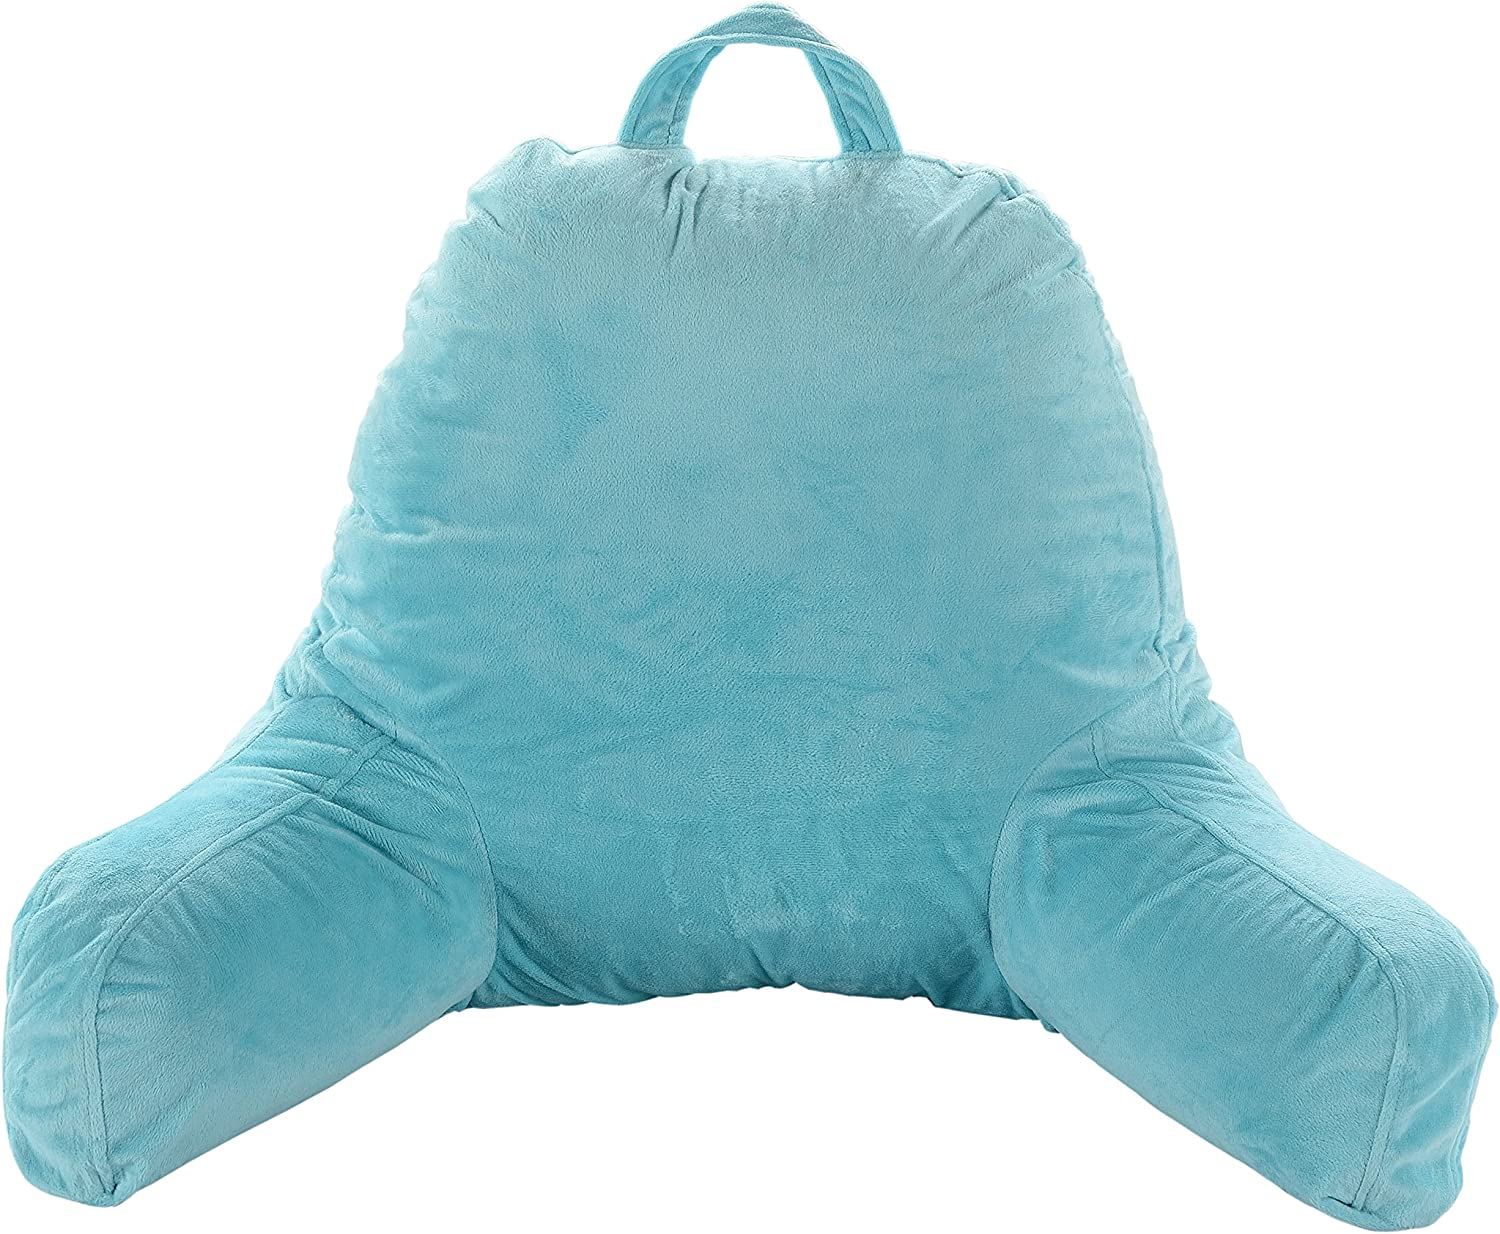 Sky Blue Cheer Collection Kids Size Reading Pillow with Arms for Sitting Up in Bed